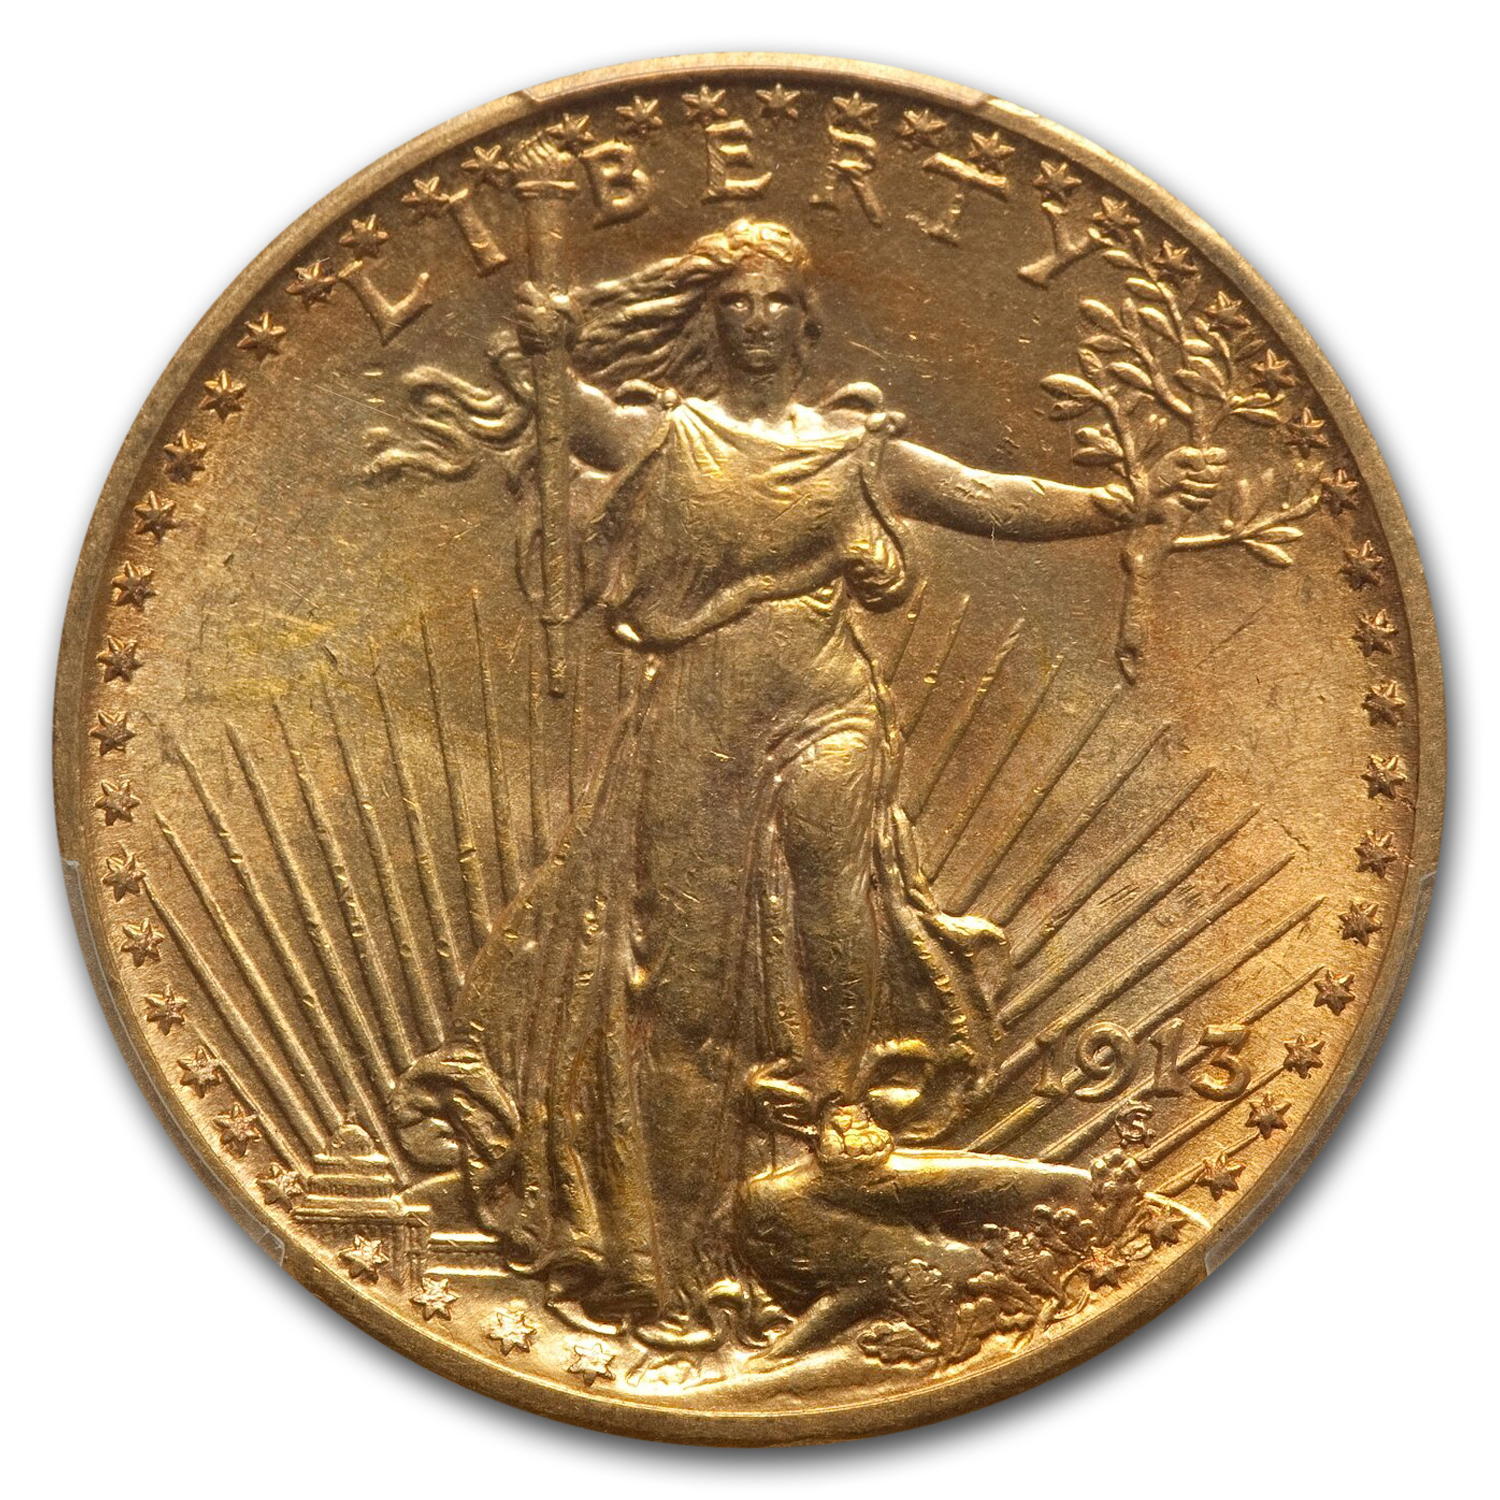 1913 $20 St. Gaudens Gold Double Eagle - MS-64 PCGS